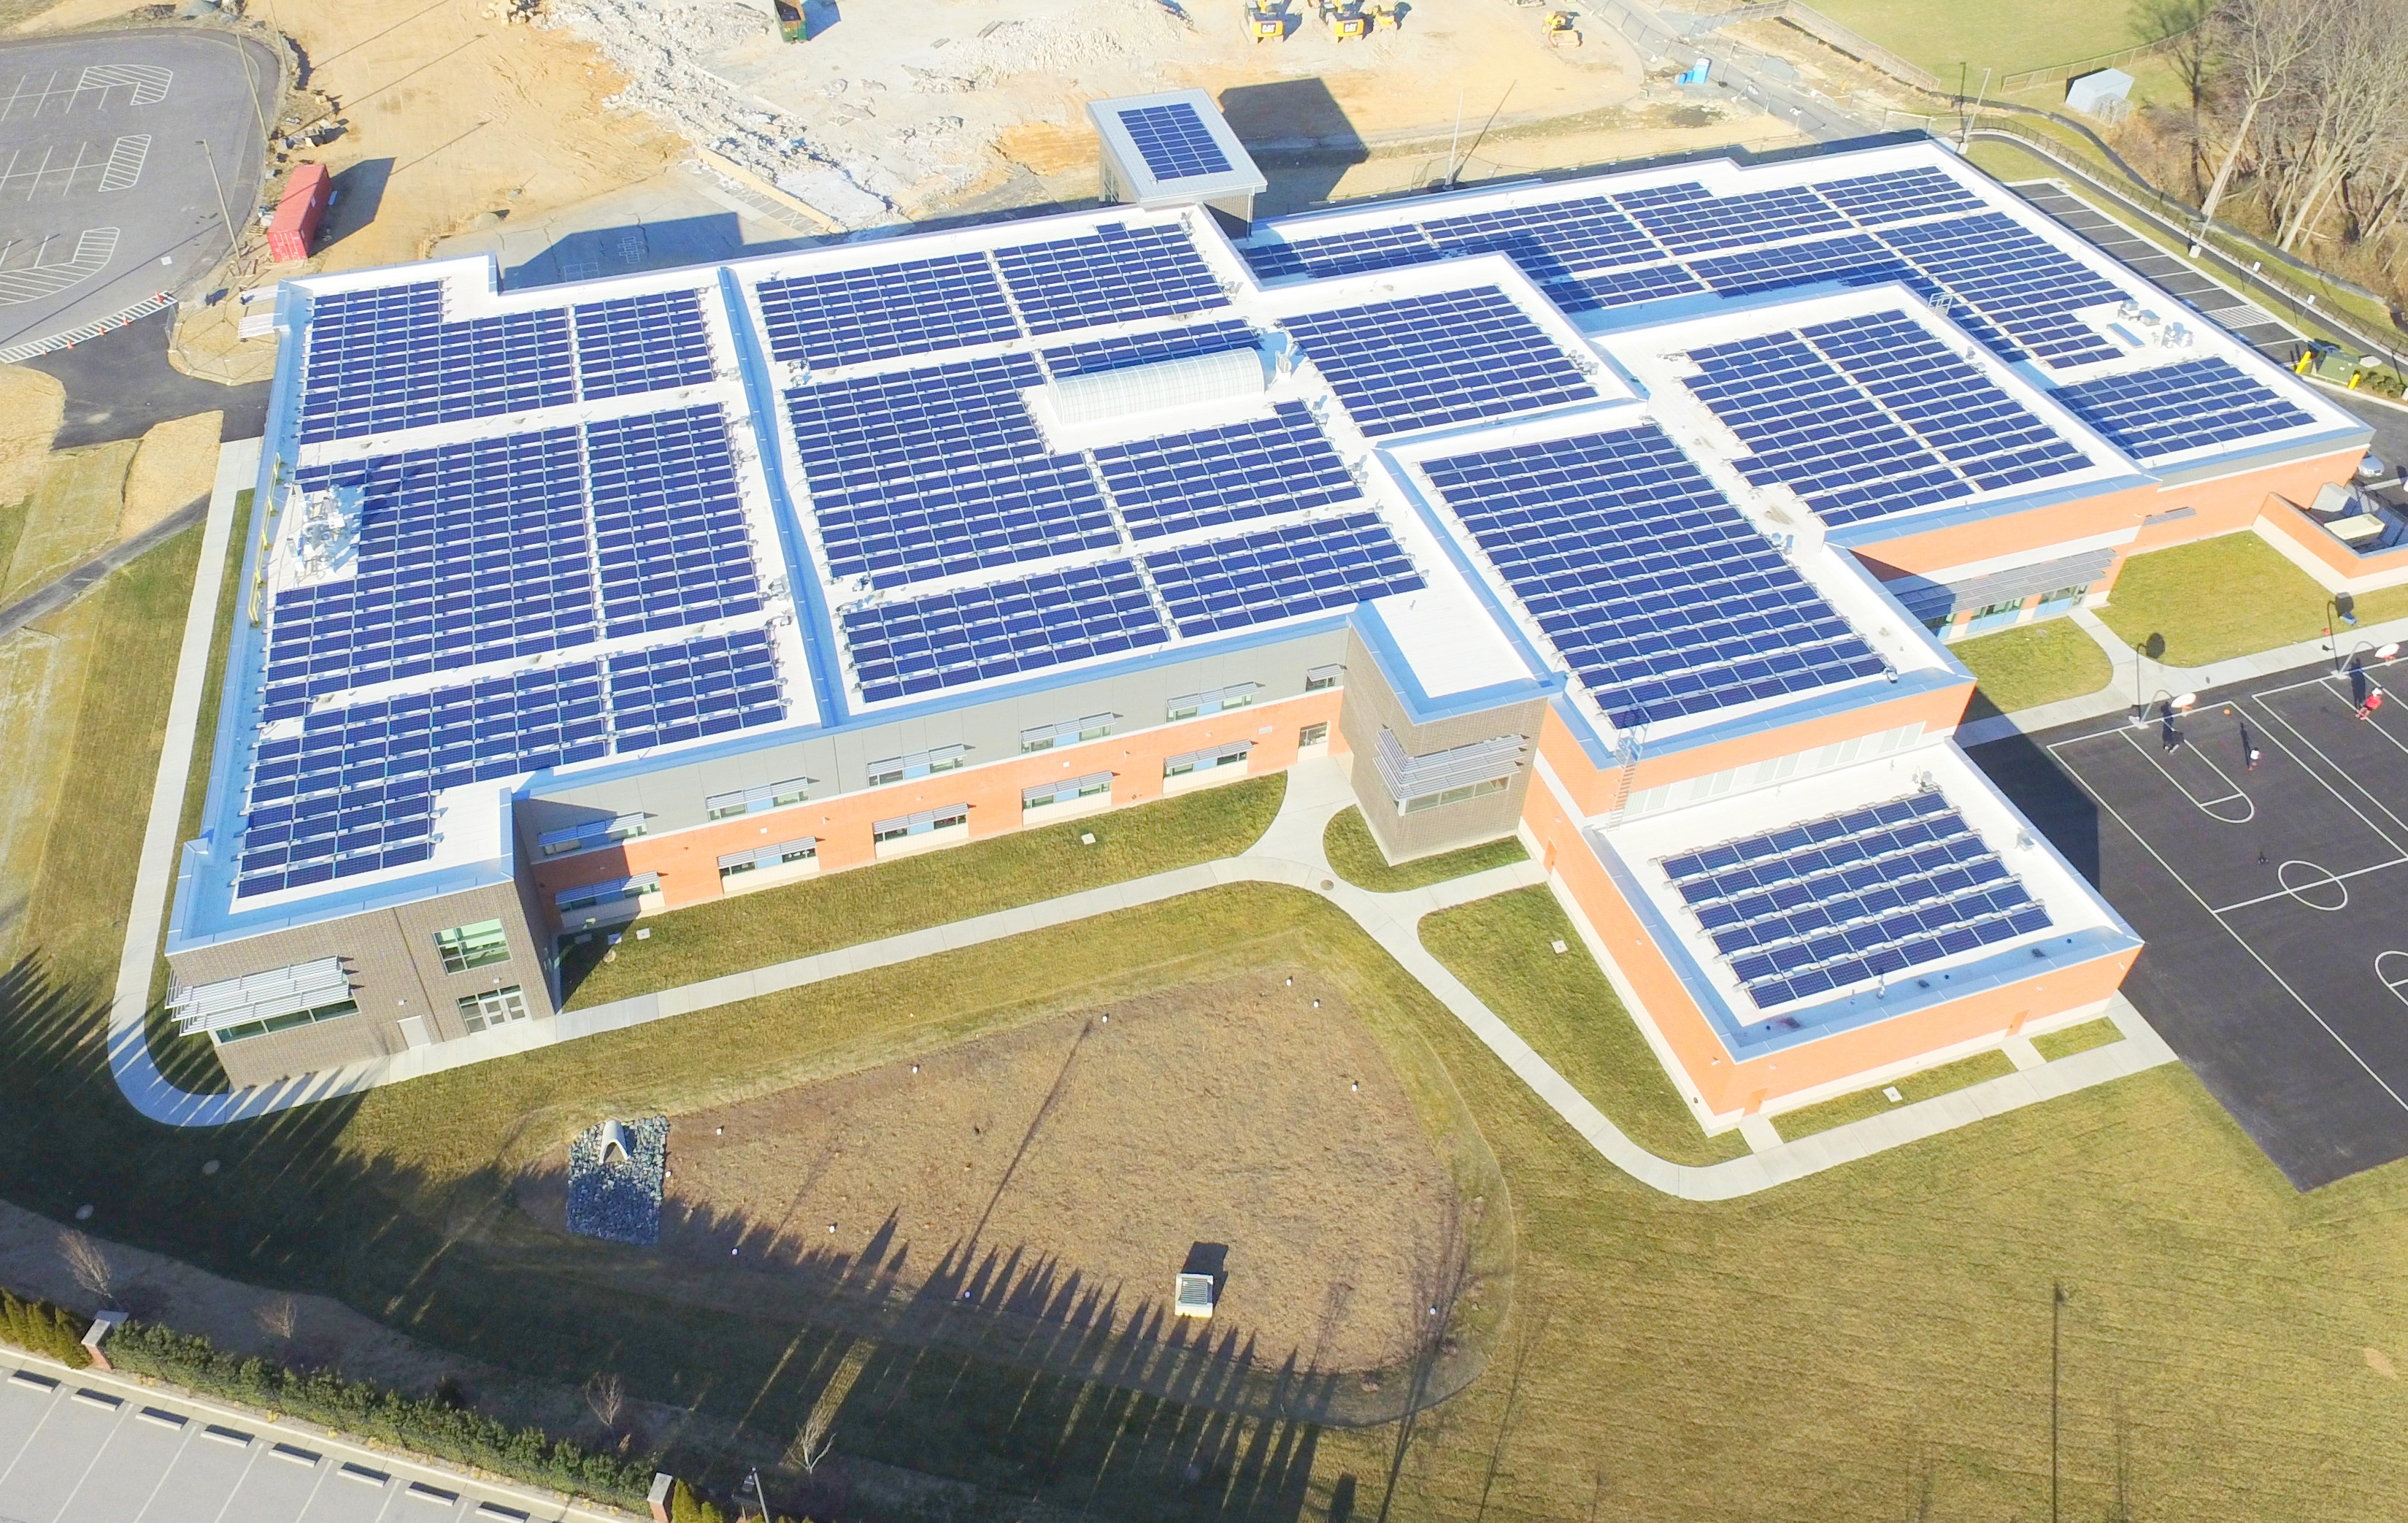 Pfister Energy Installs Solar For First Net Zero Energy